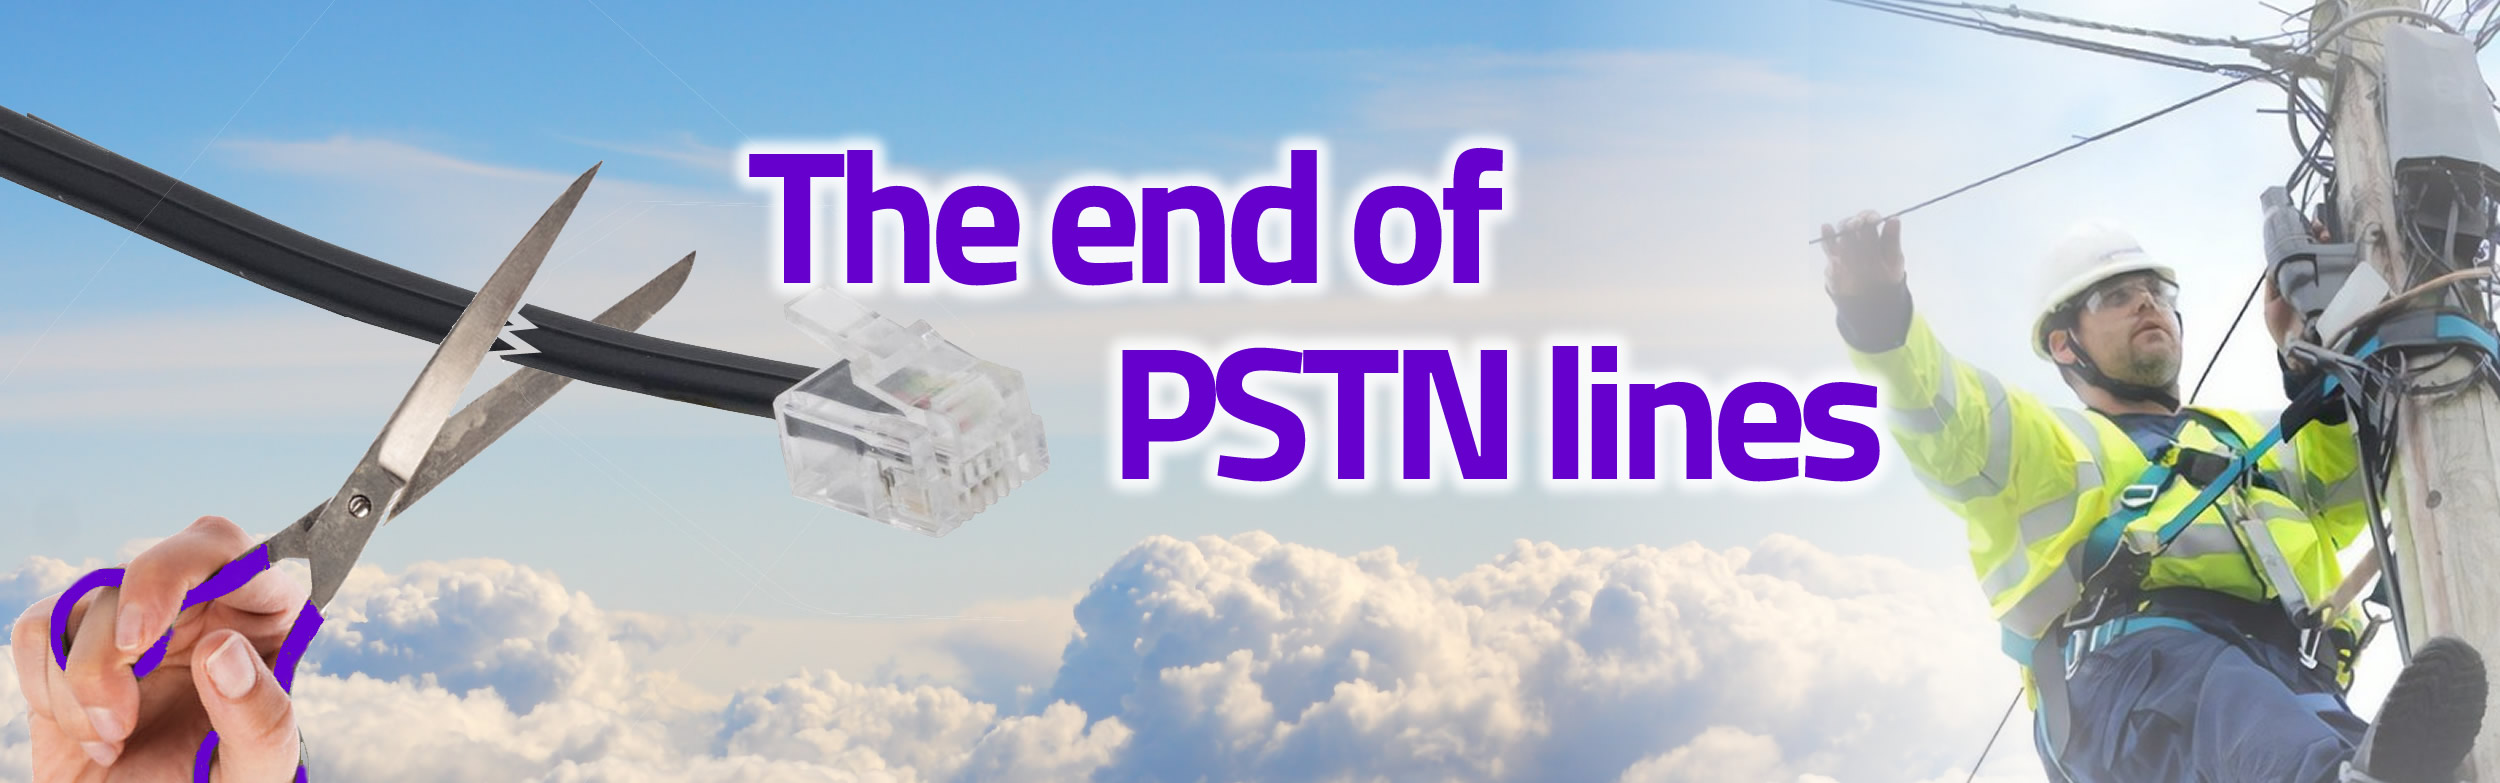 The end of PSTN telephone lines